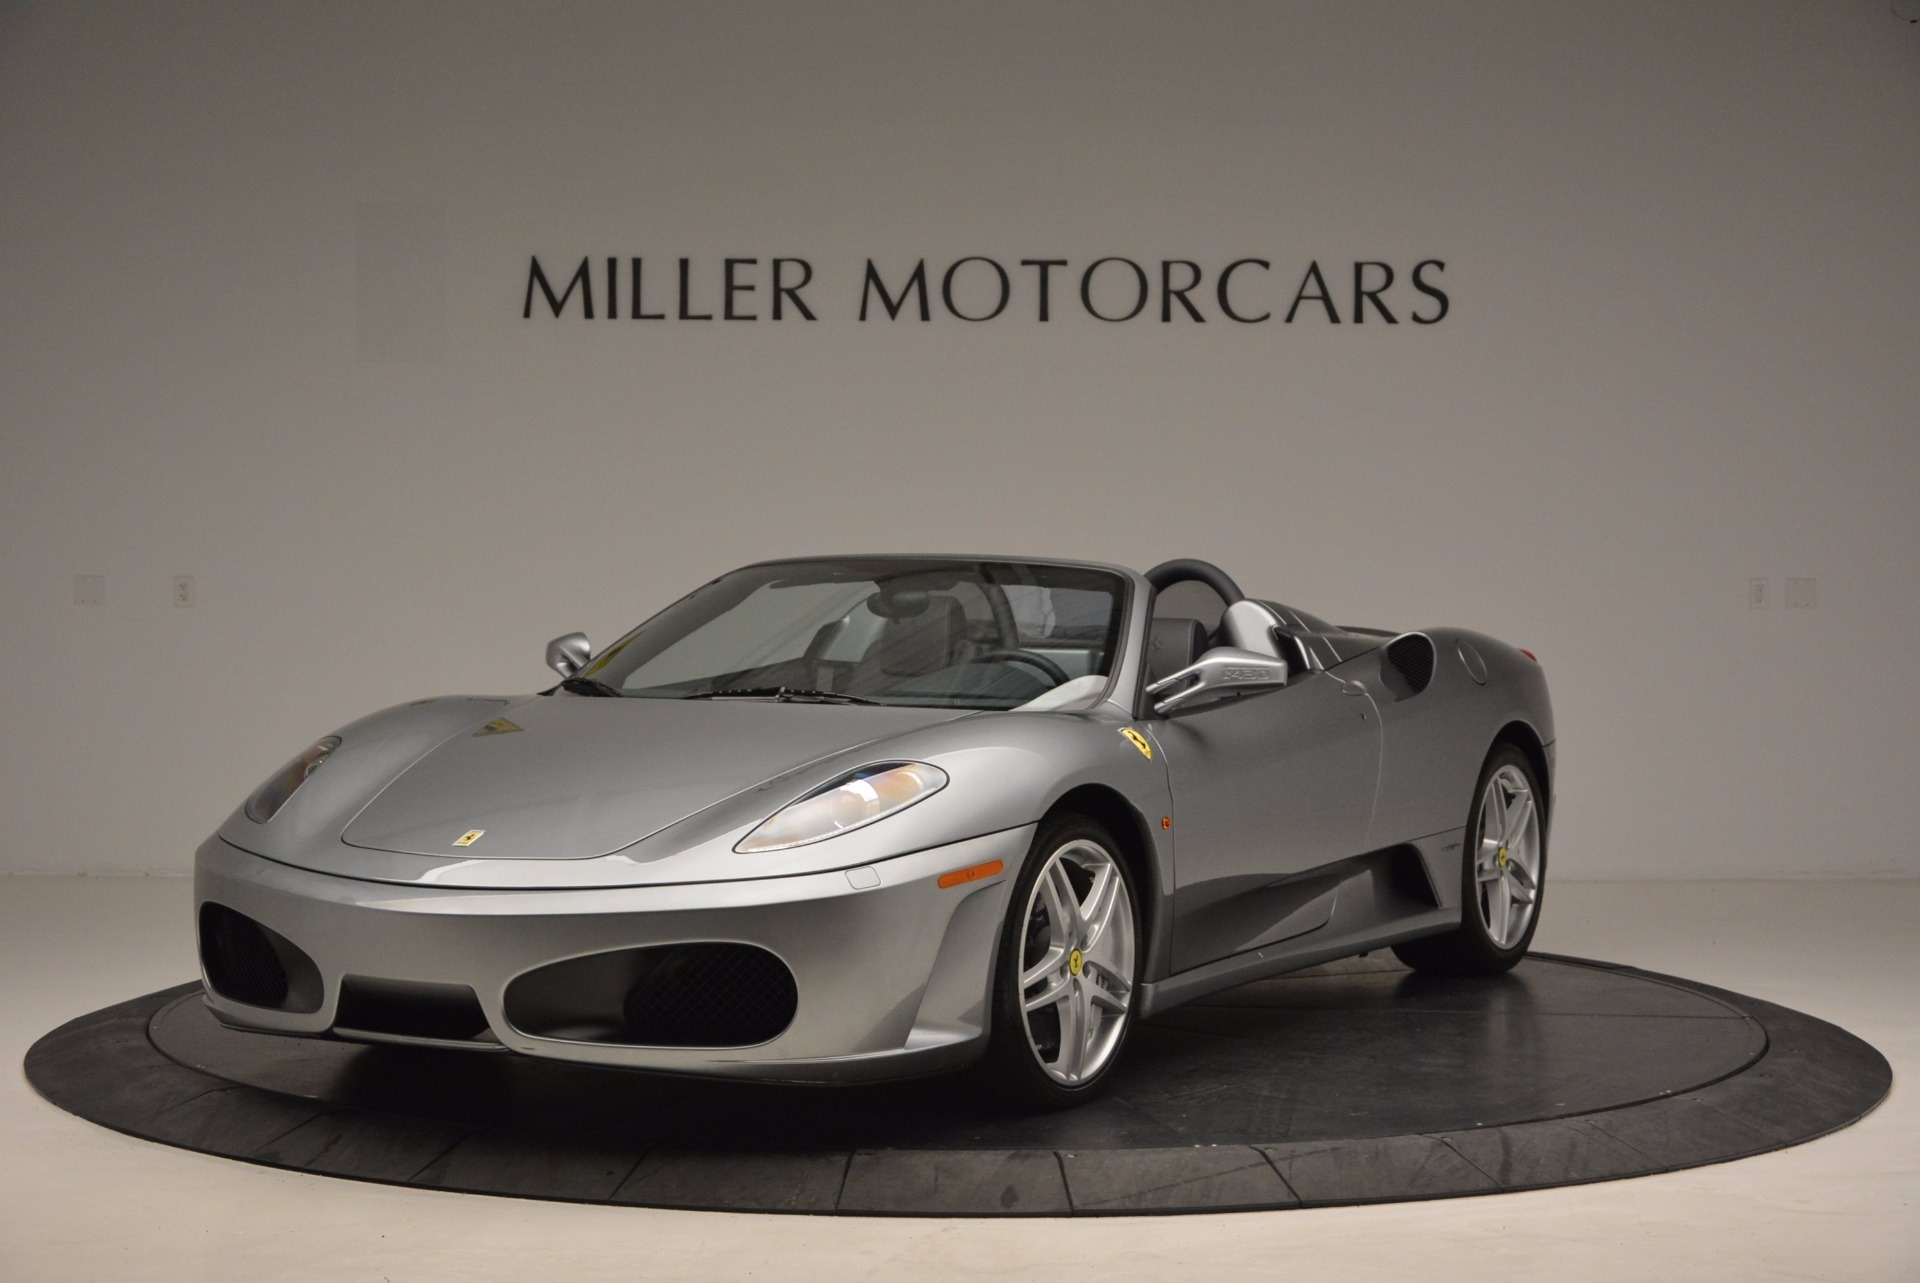 Used 2007 Ferrari F430 Spider for sale $121,900 at Alfa Romeo of Westport in Westport CT 06880 1